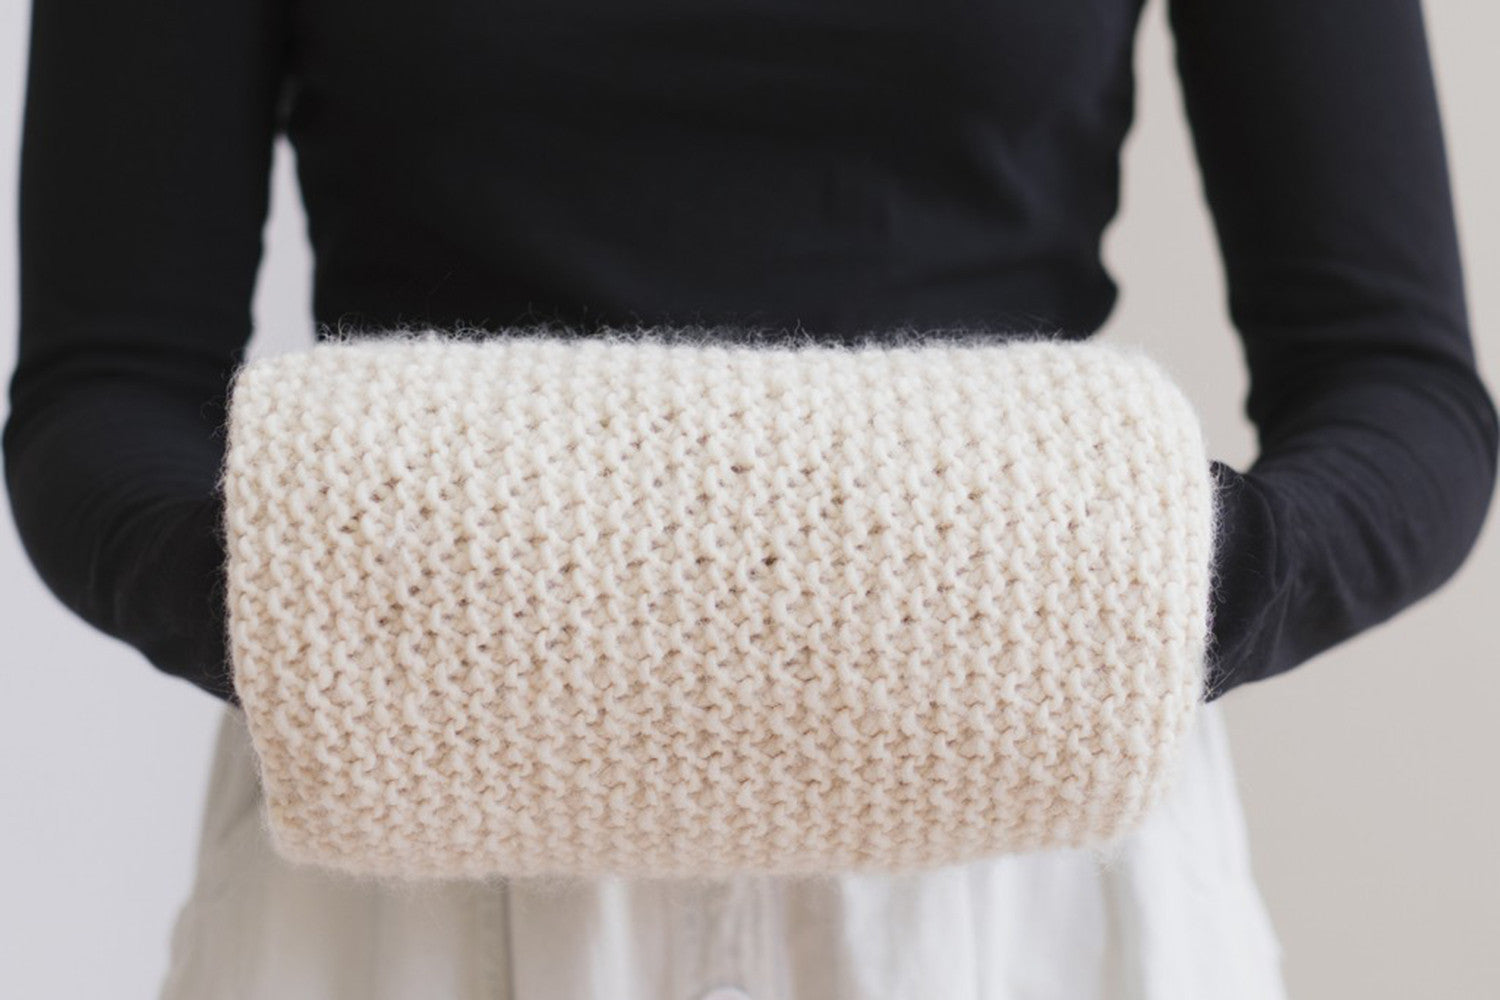 The Wooly Handwarmer Knit Kit